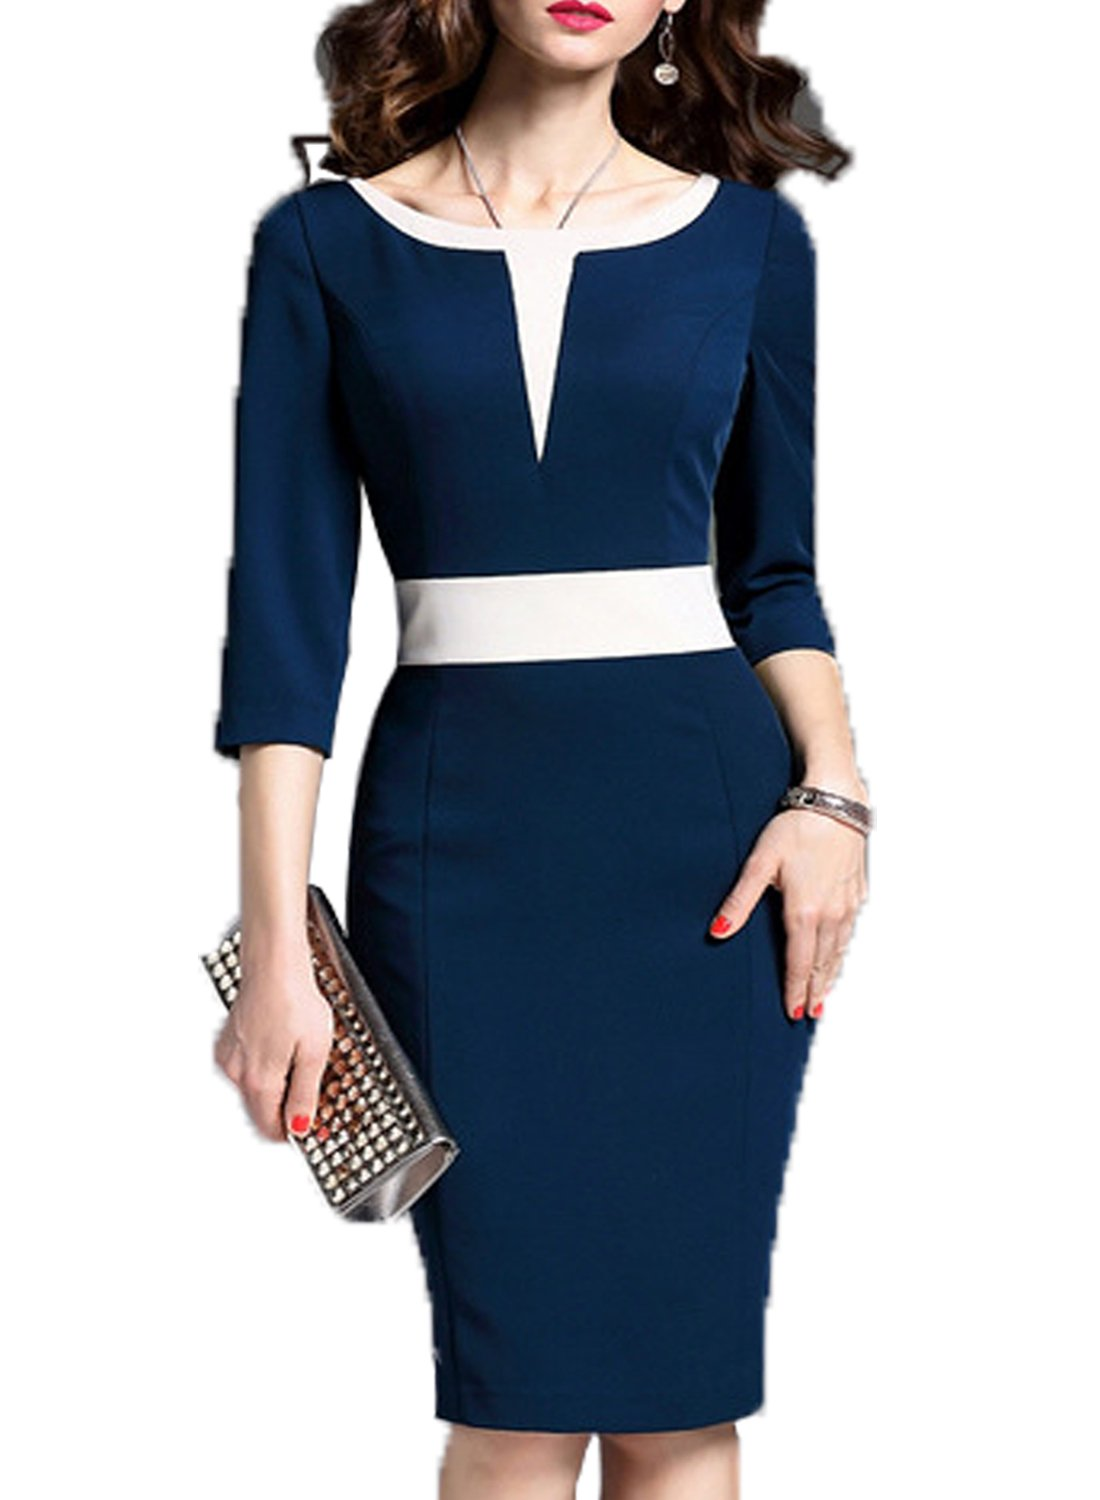 WOOSEA Women's 2/3 Sleeve Colorblock Slim Bodycon Business Pencil Dress (Medium, Navy Blue)